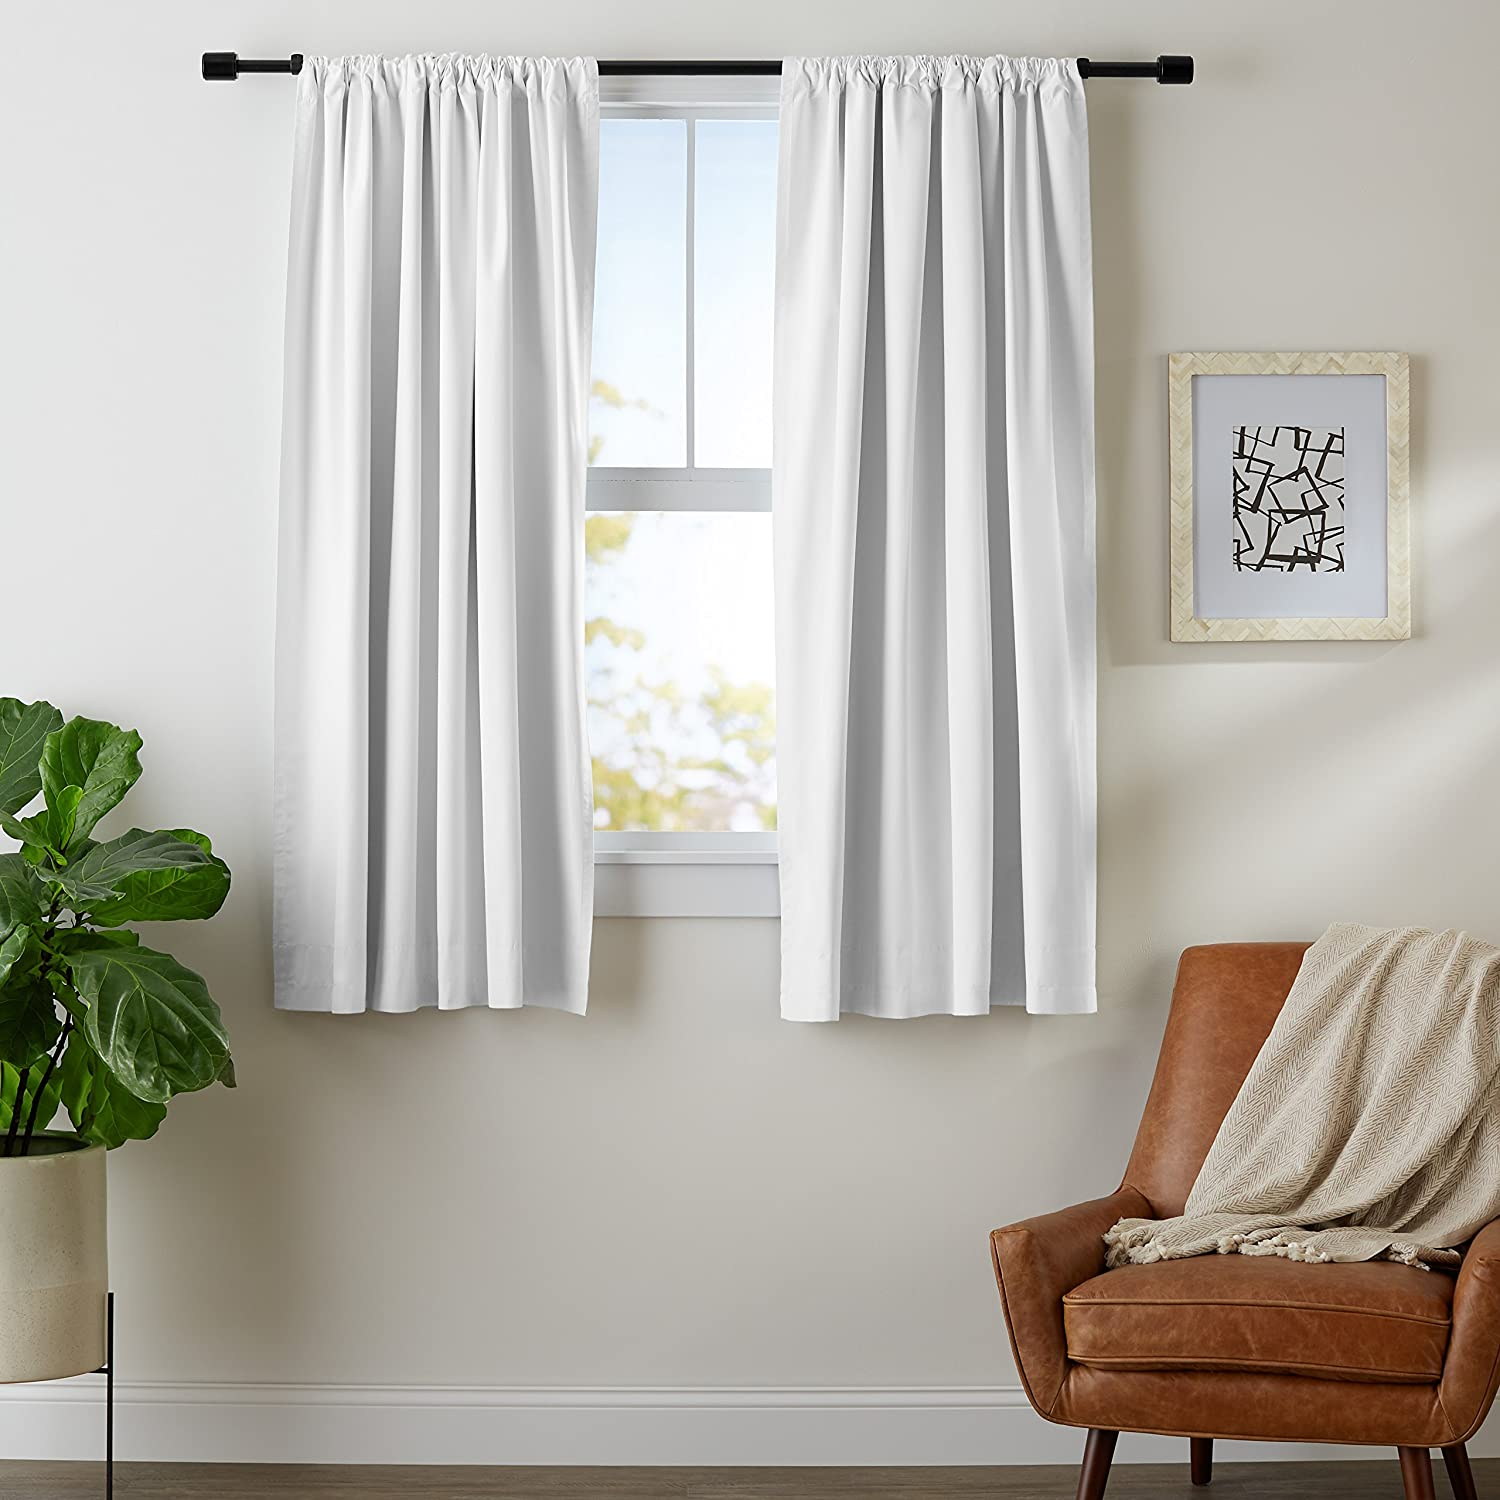 Image result for window curtains